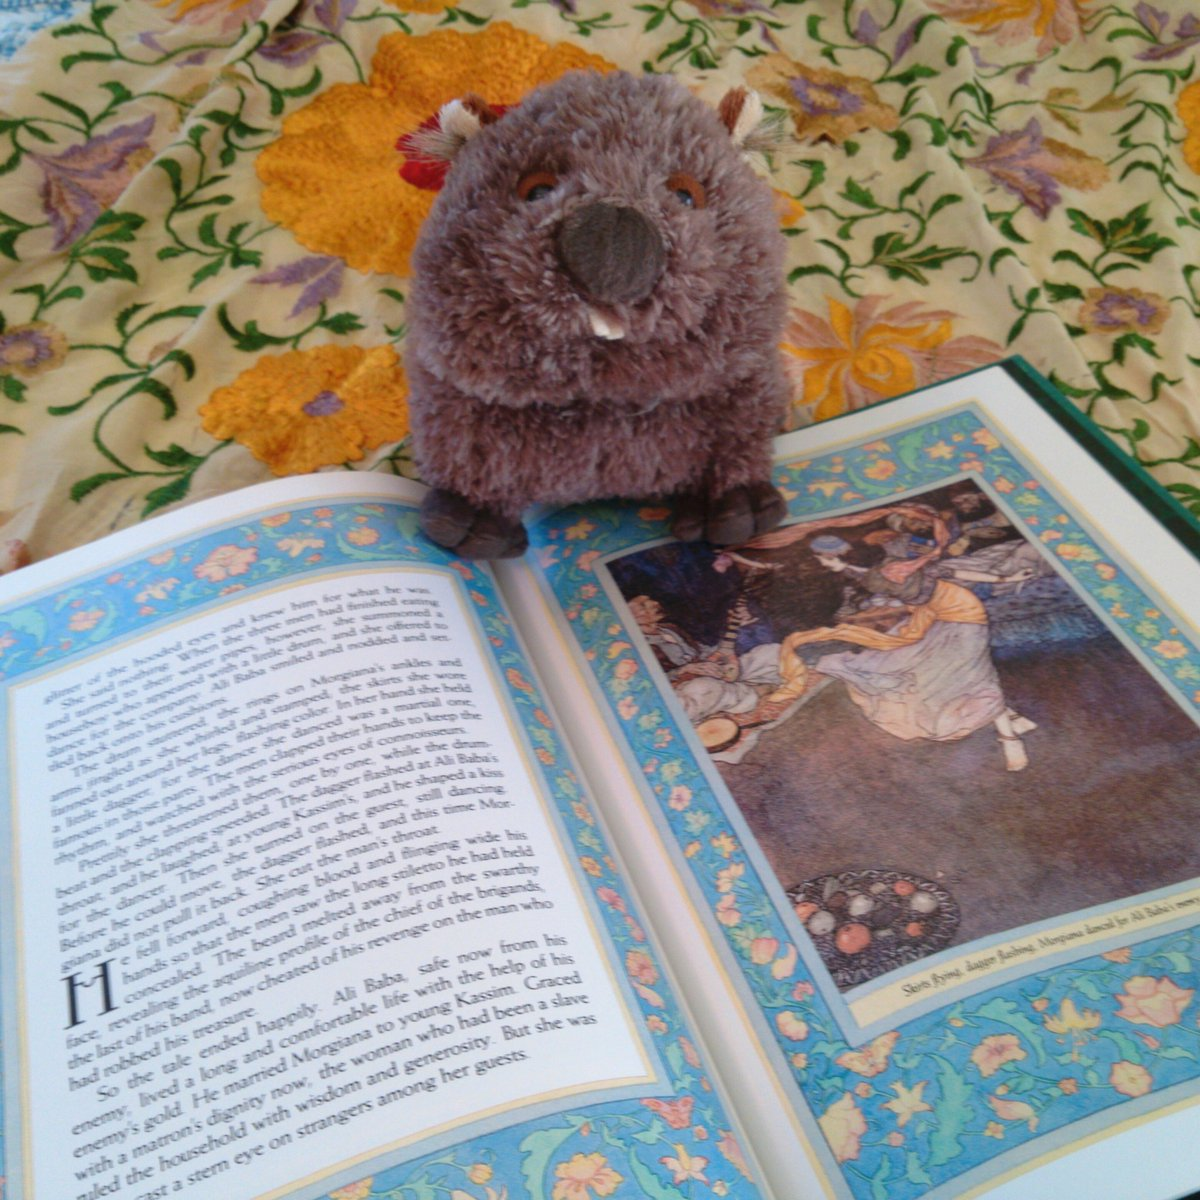 Lady MacWombat helps me seek #costumedesign inspiration for @GreenManTheatre's Arabian Nights. #wombatfriday https://t.co/5GPpUt0tht